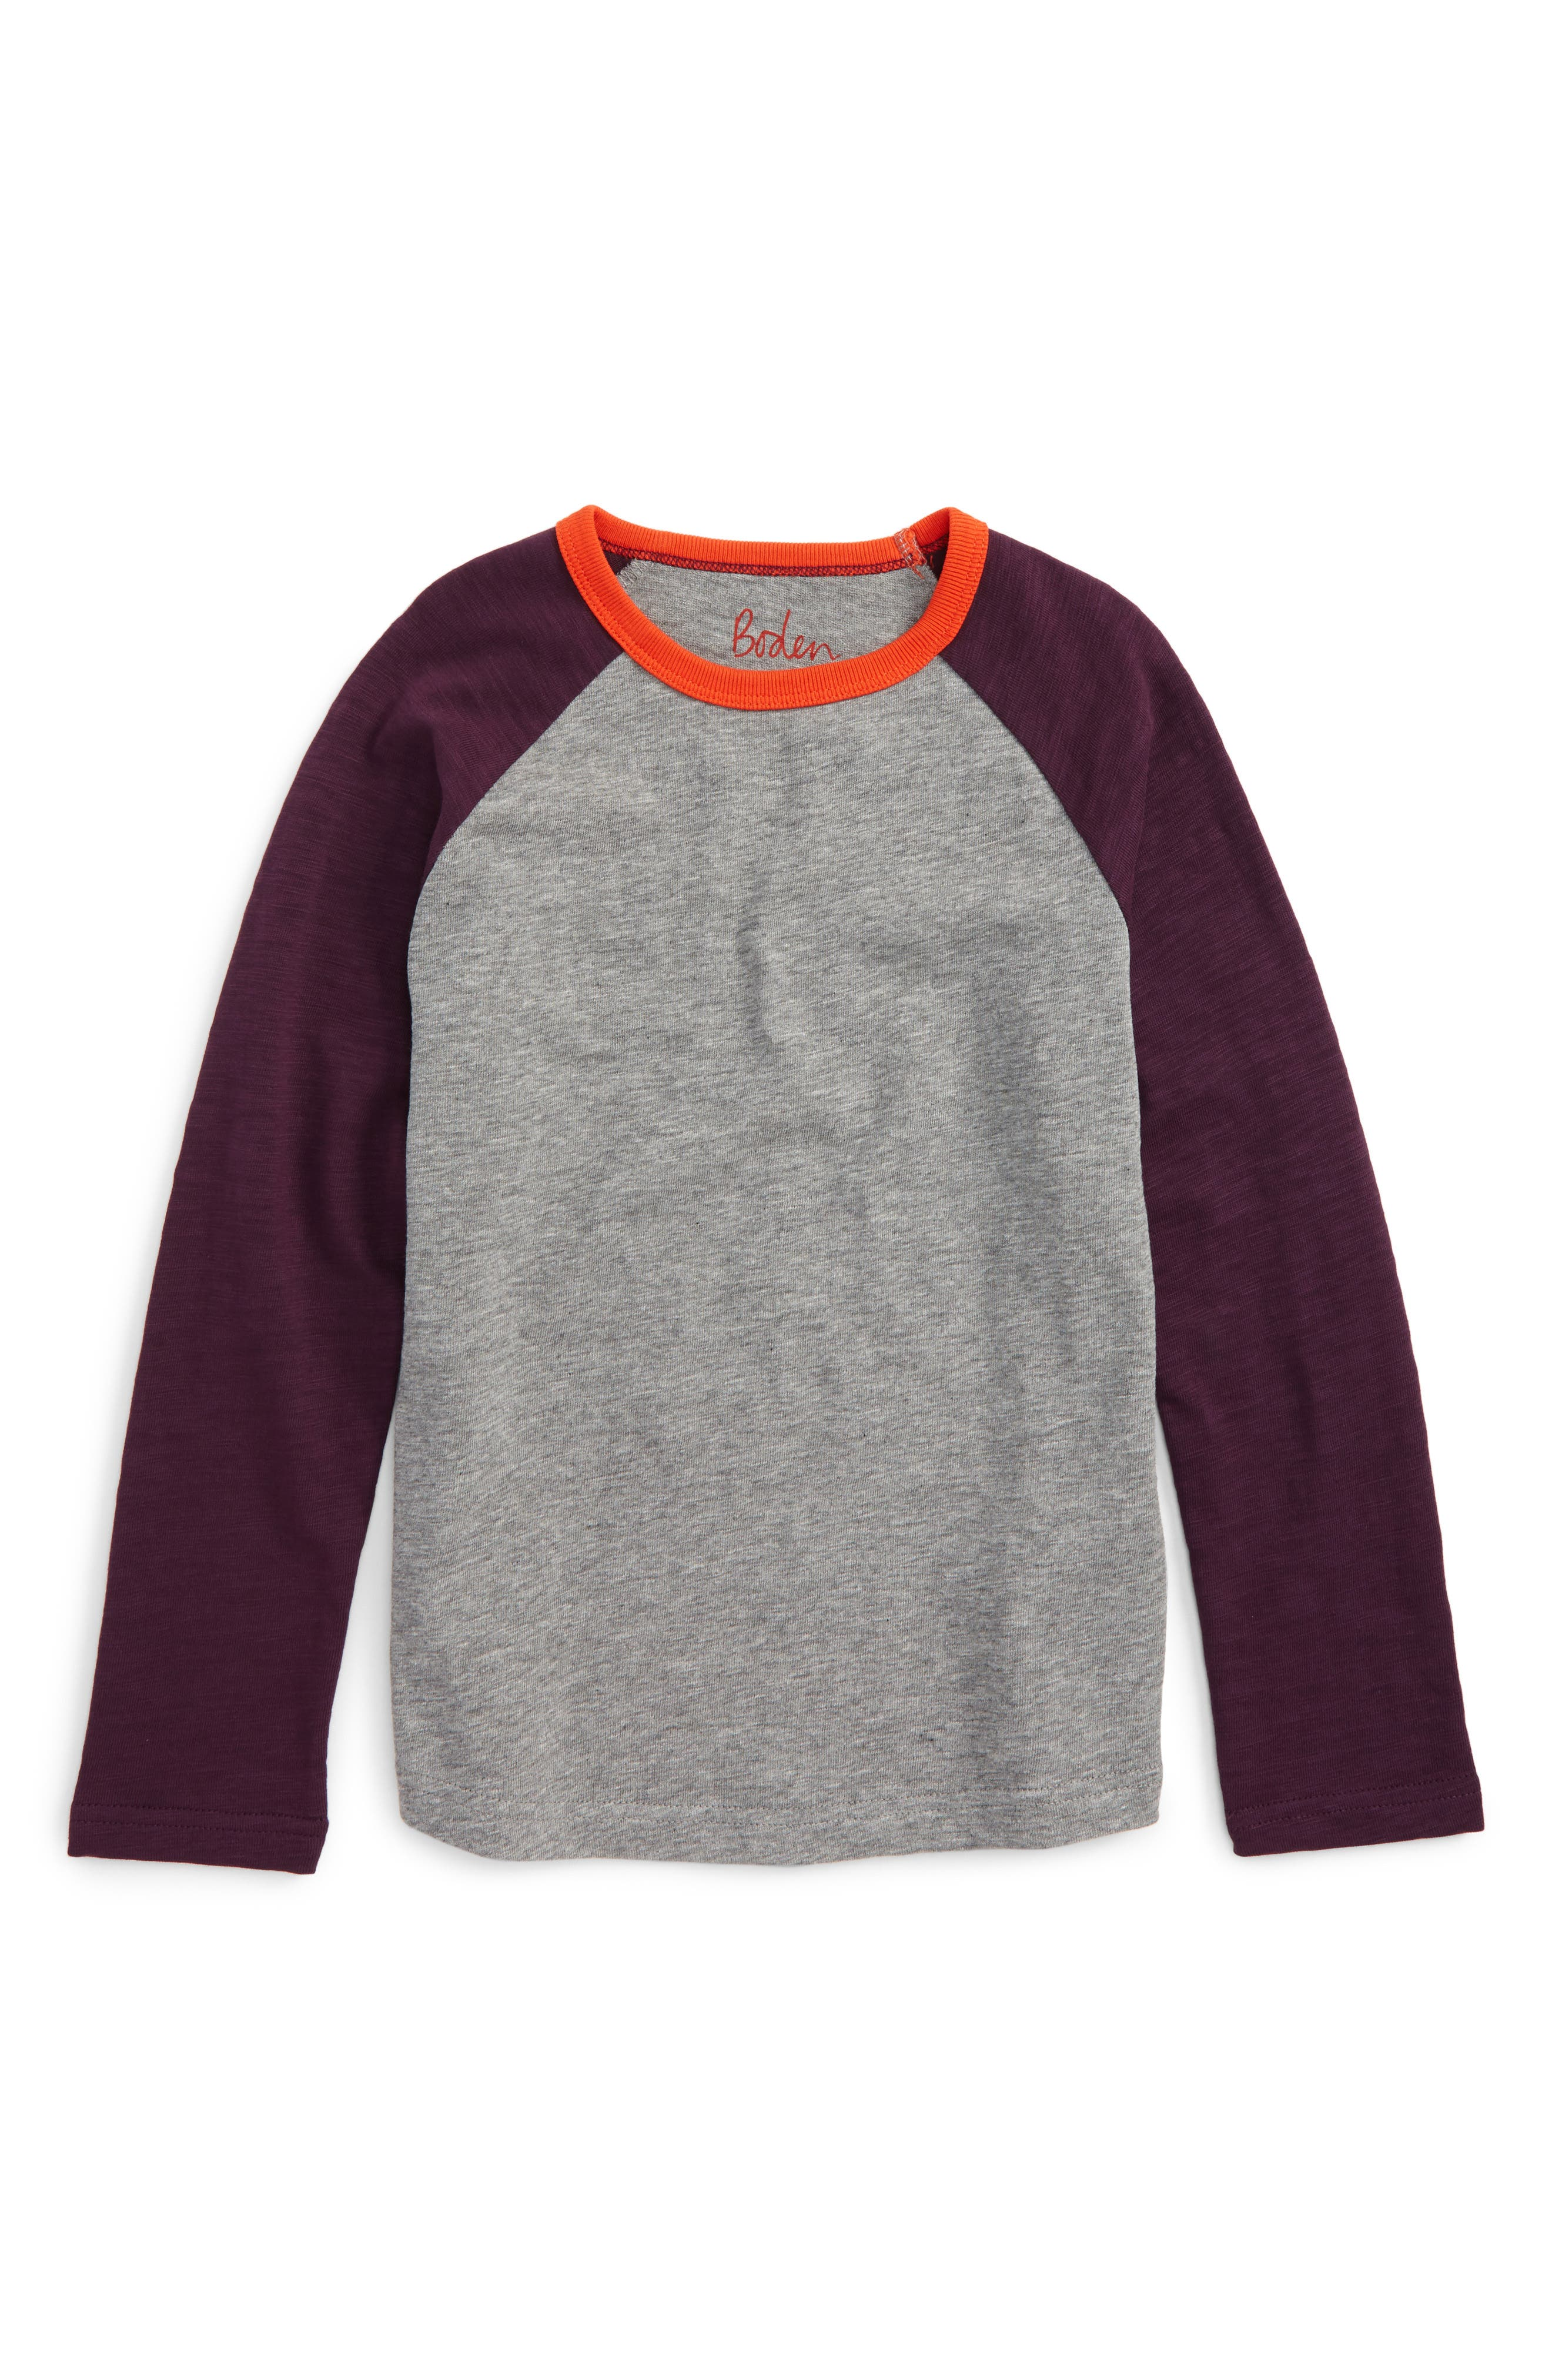 Raglan Sleeve T-Shirt,                             Main thumbnail 1, color,                             062